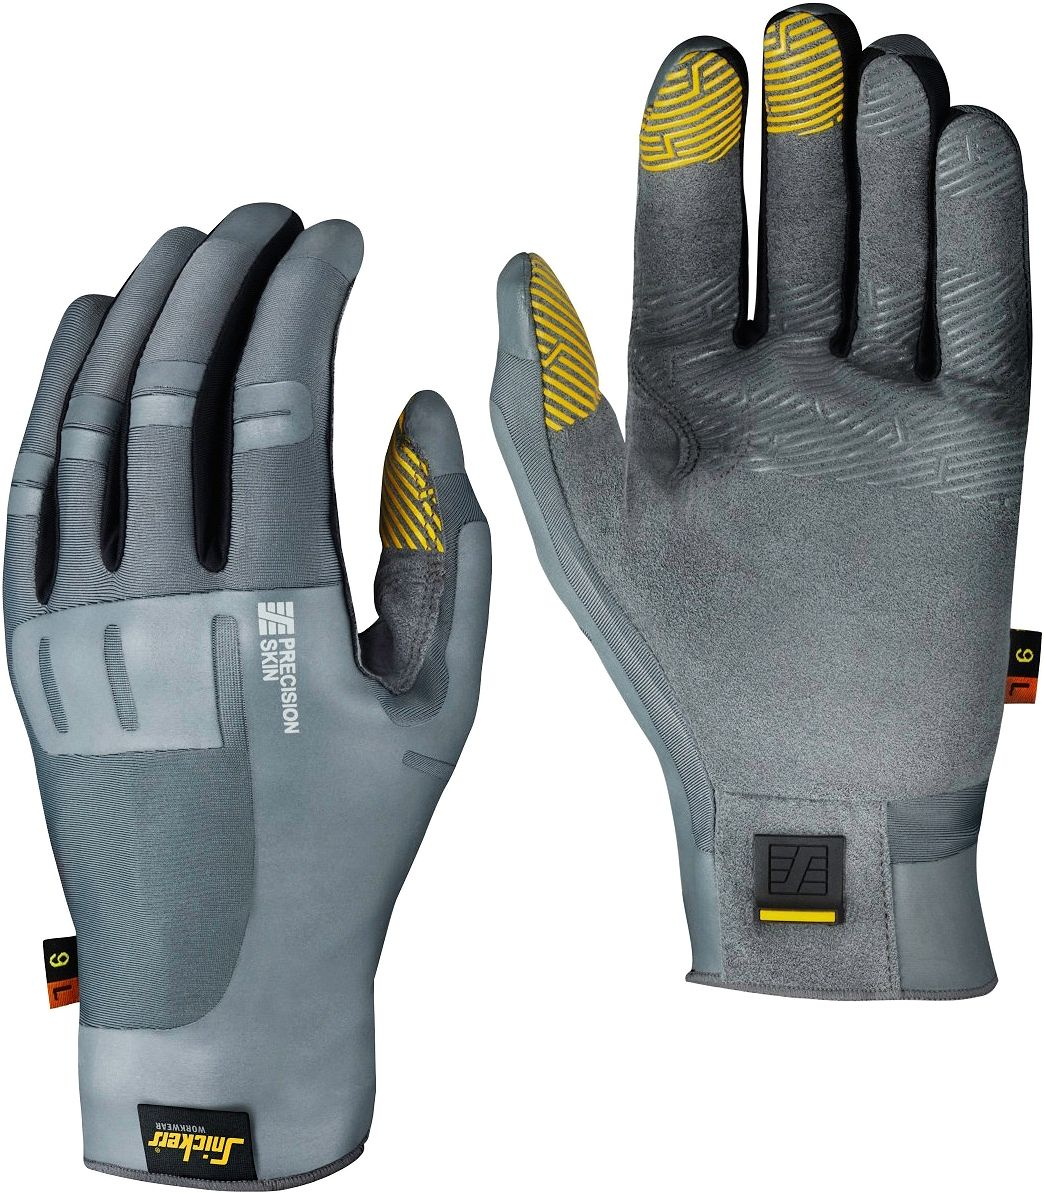 GANTS SNICKERS PRECISION SKIN D T9